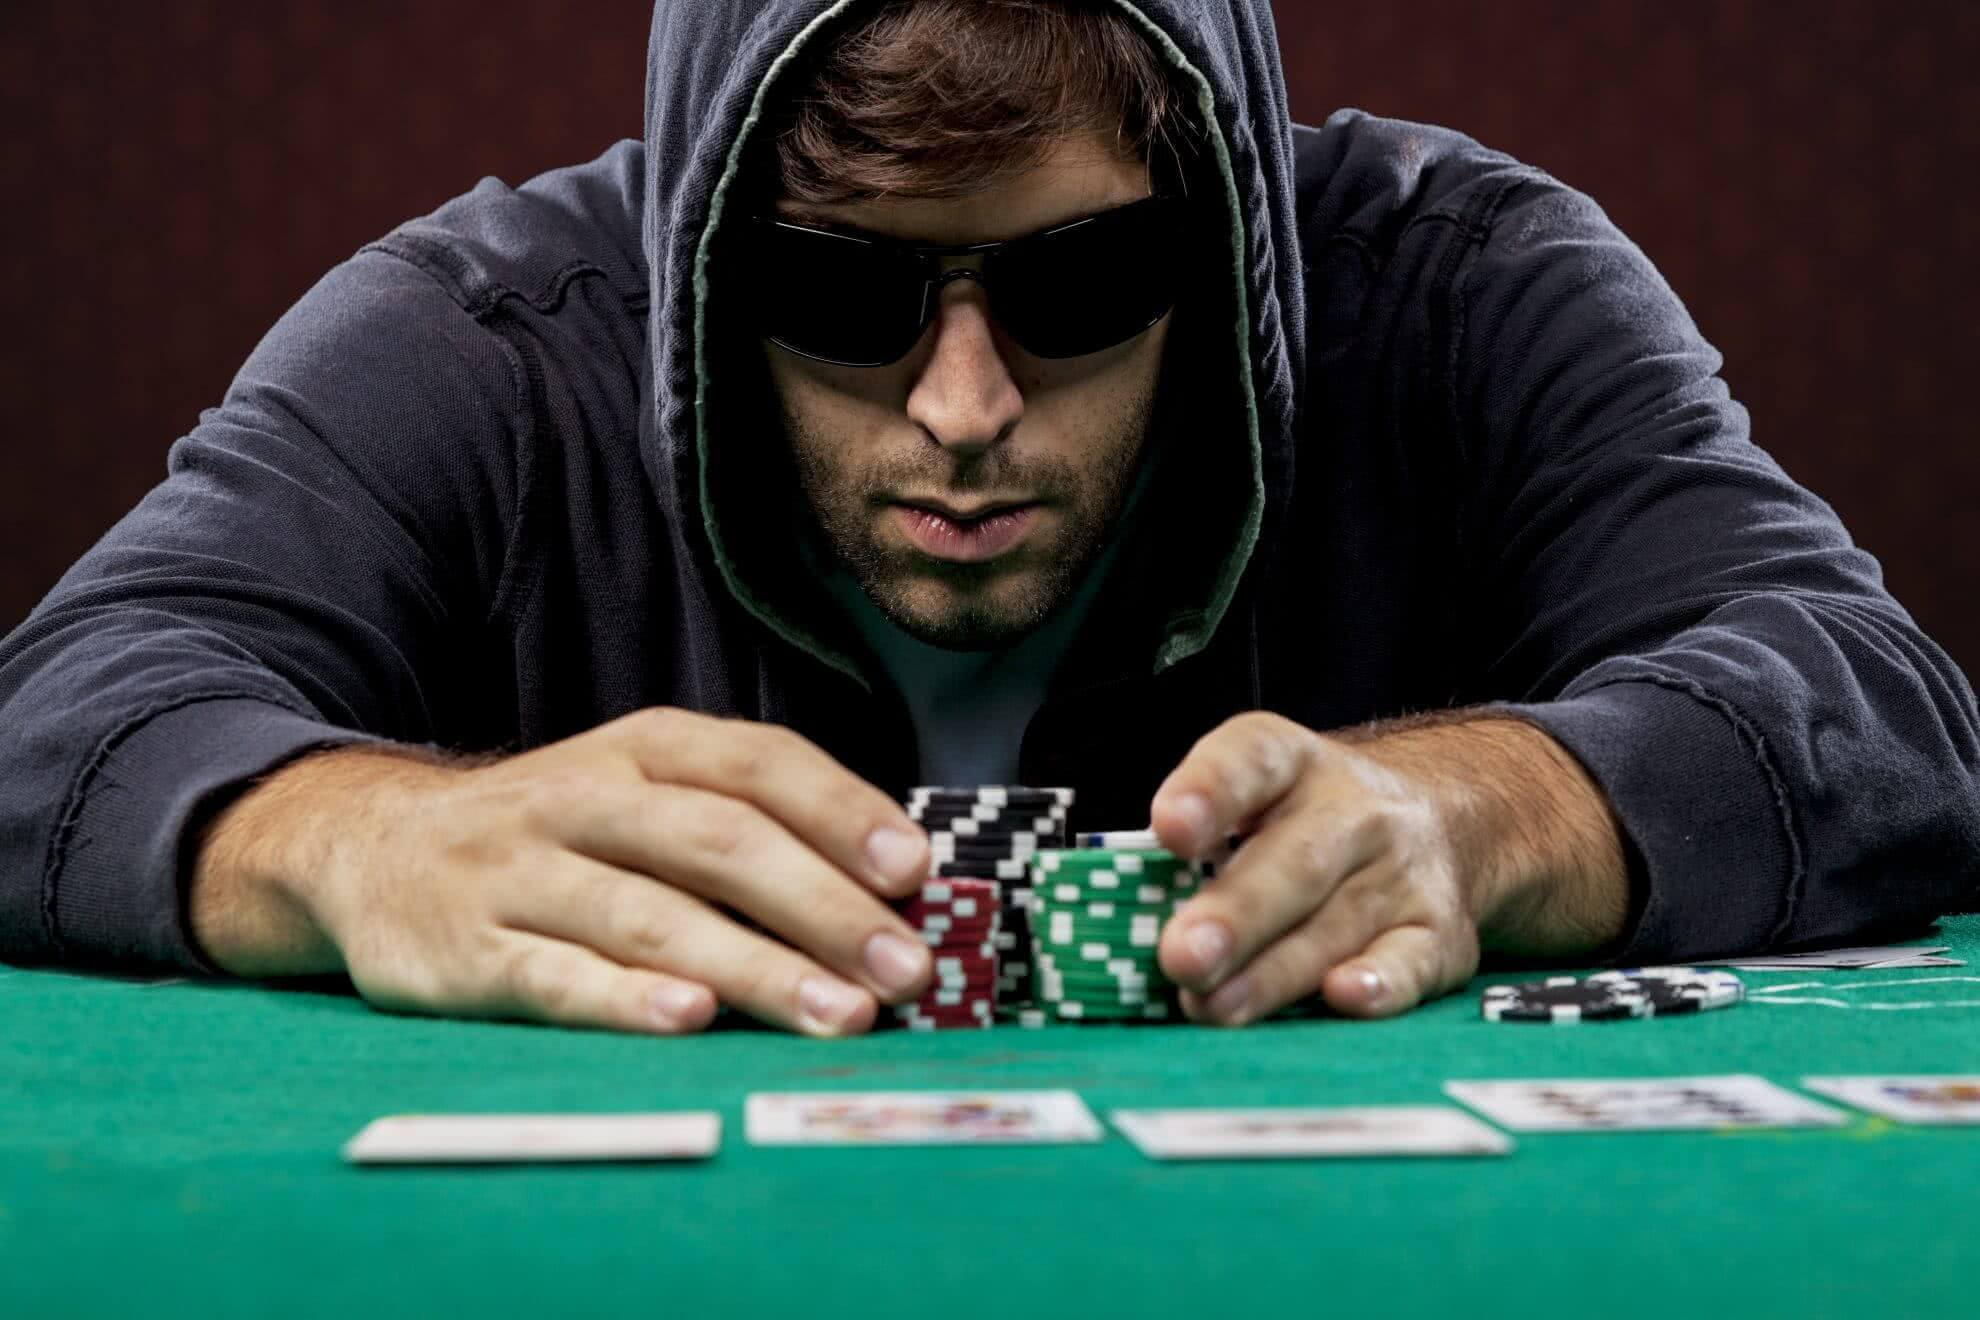 10 poker tips that will get you further